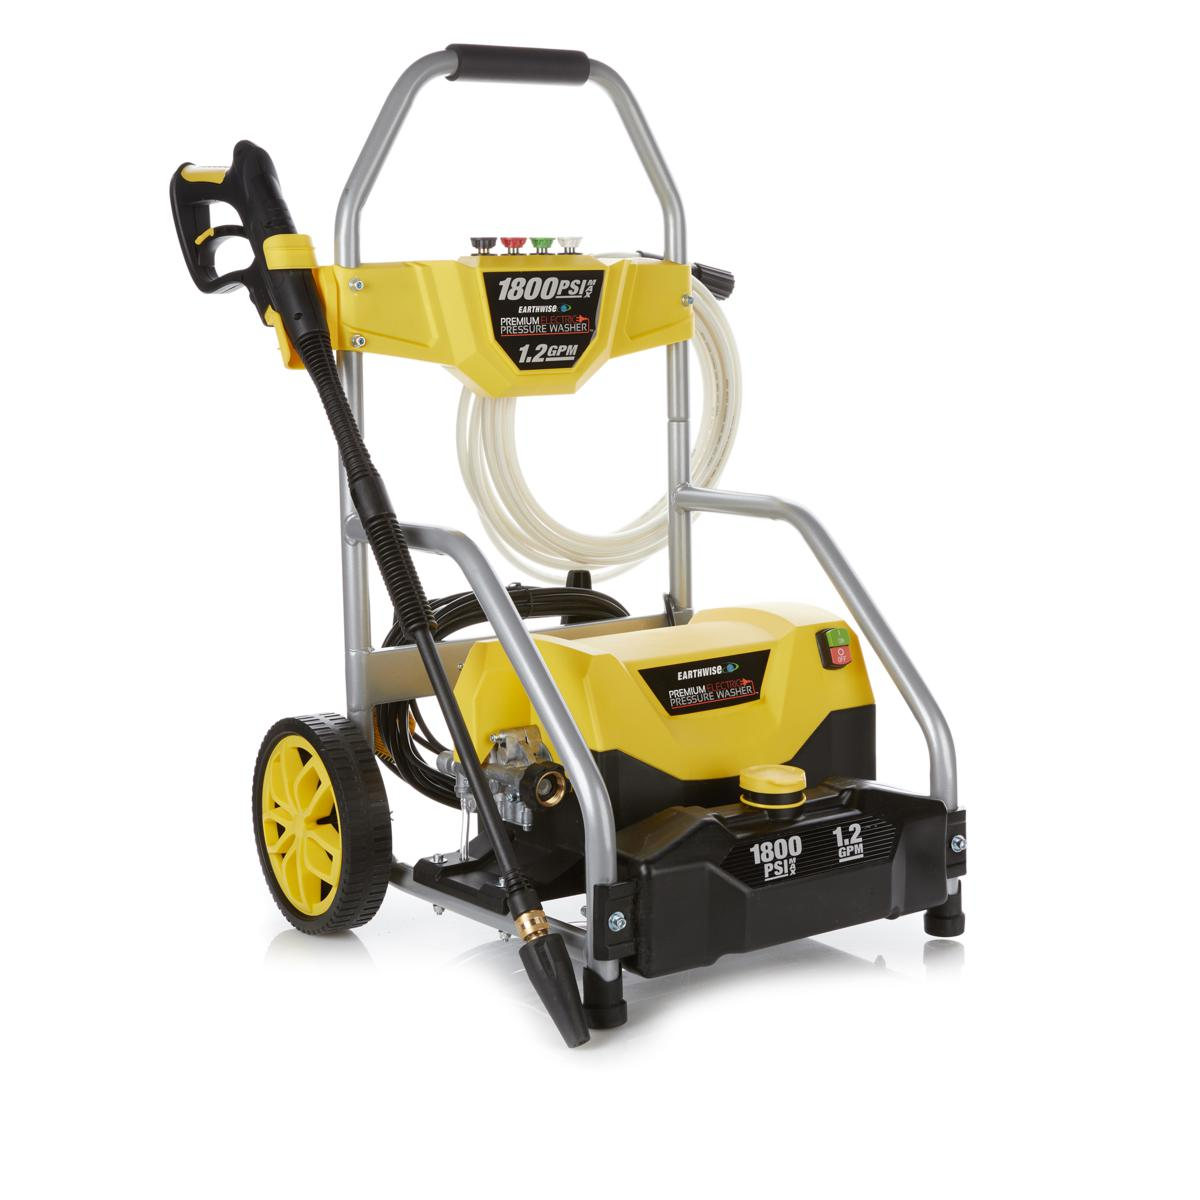 EARTHWISE 1800 PSI Electric Pressure Washer with Turbo Wand